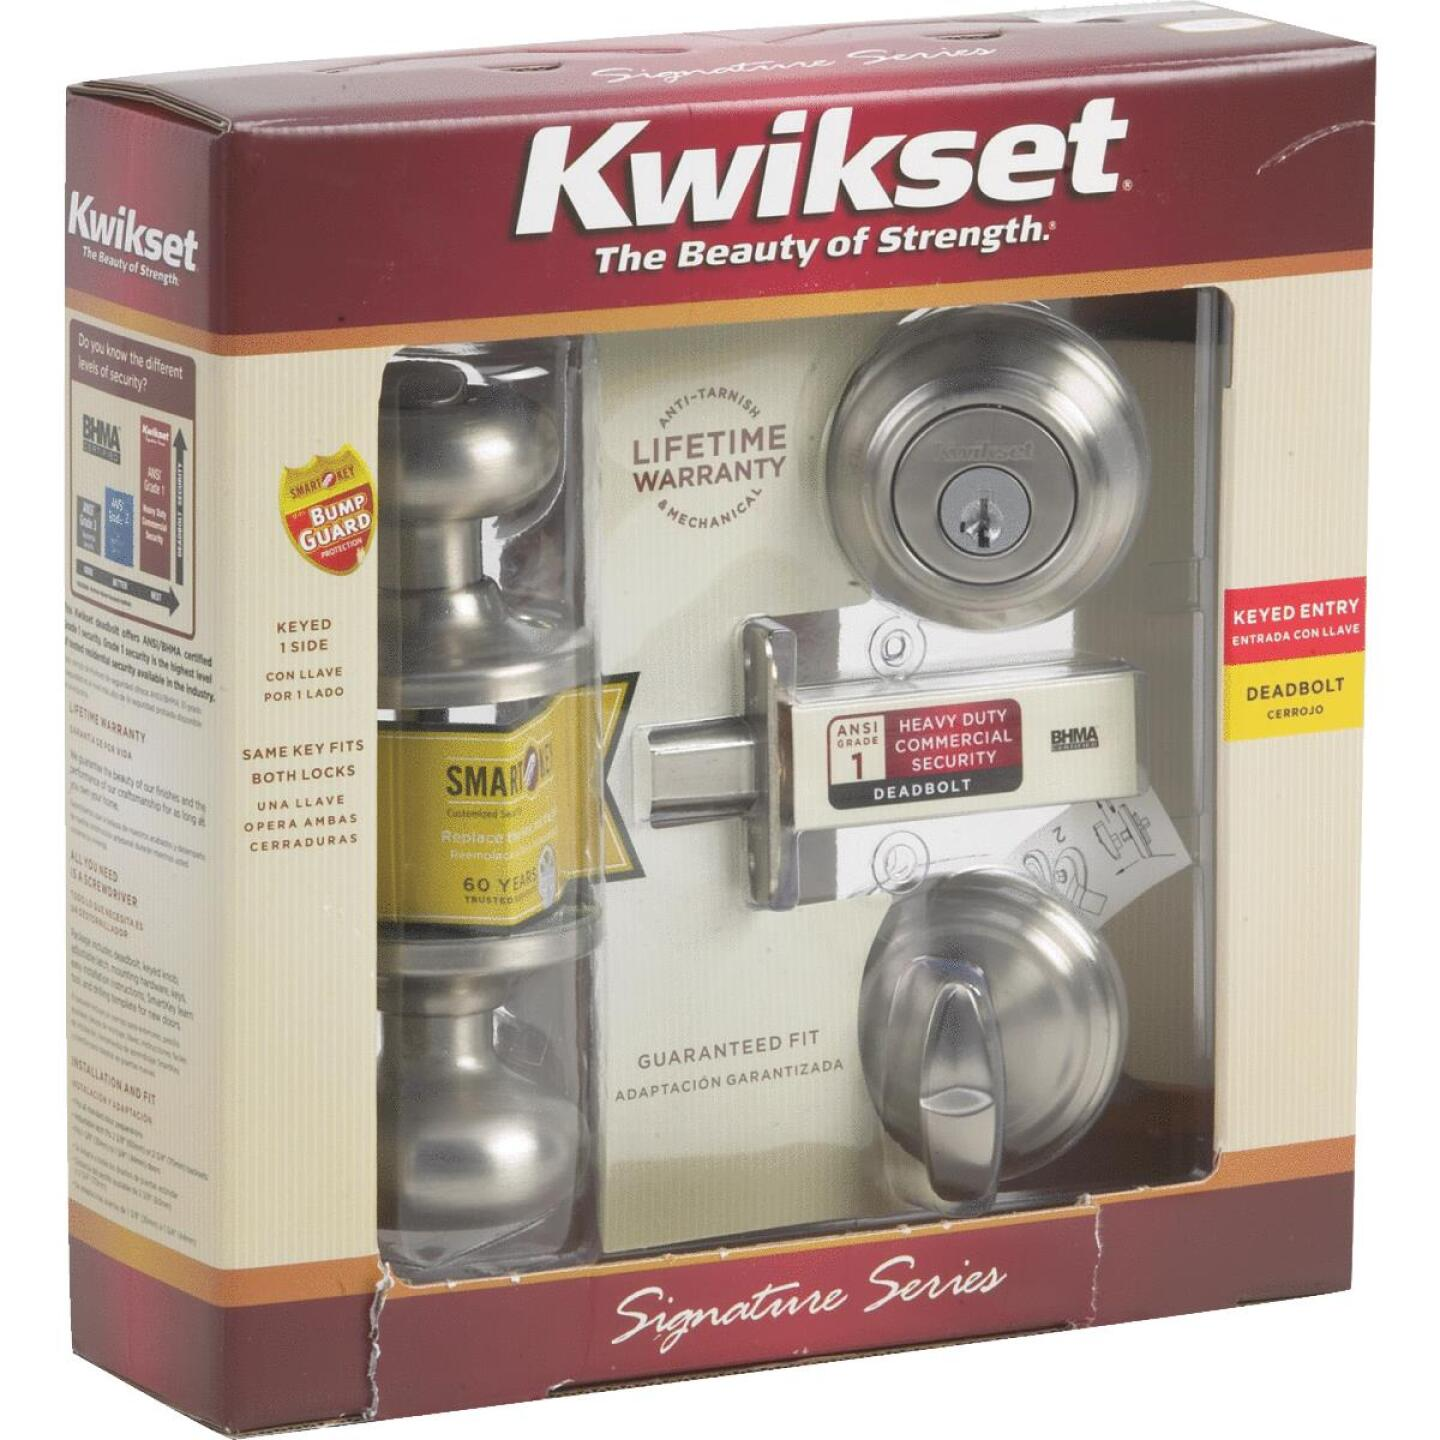 Kwikset Signature Series Satin Nickel Deadbolt and Door Knob Combo Image 5